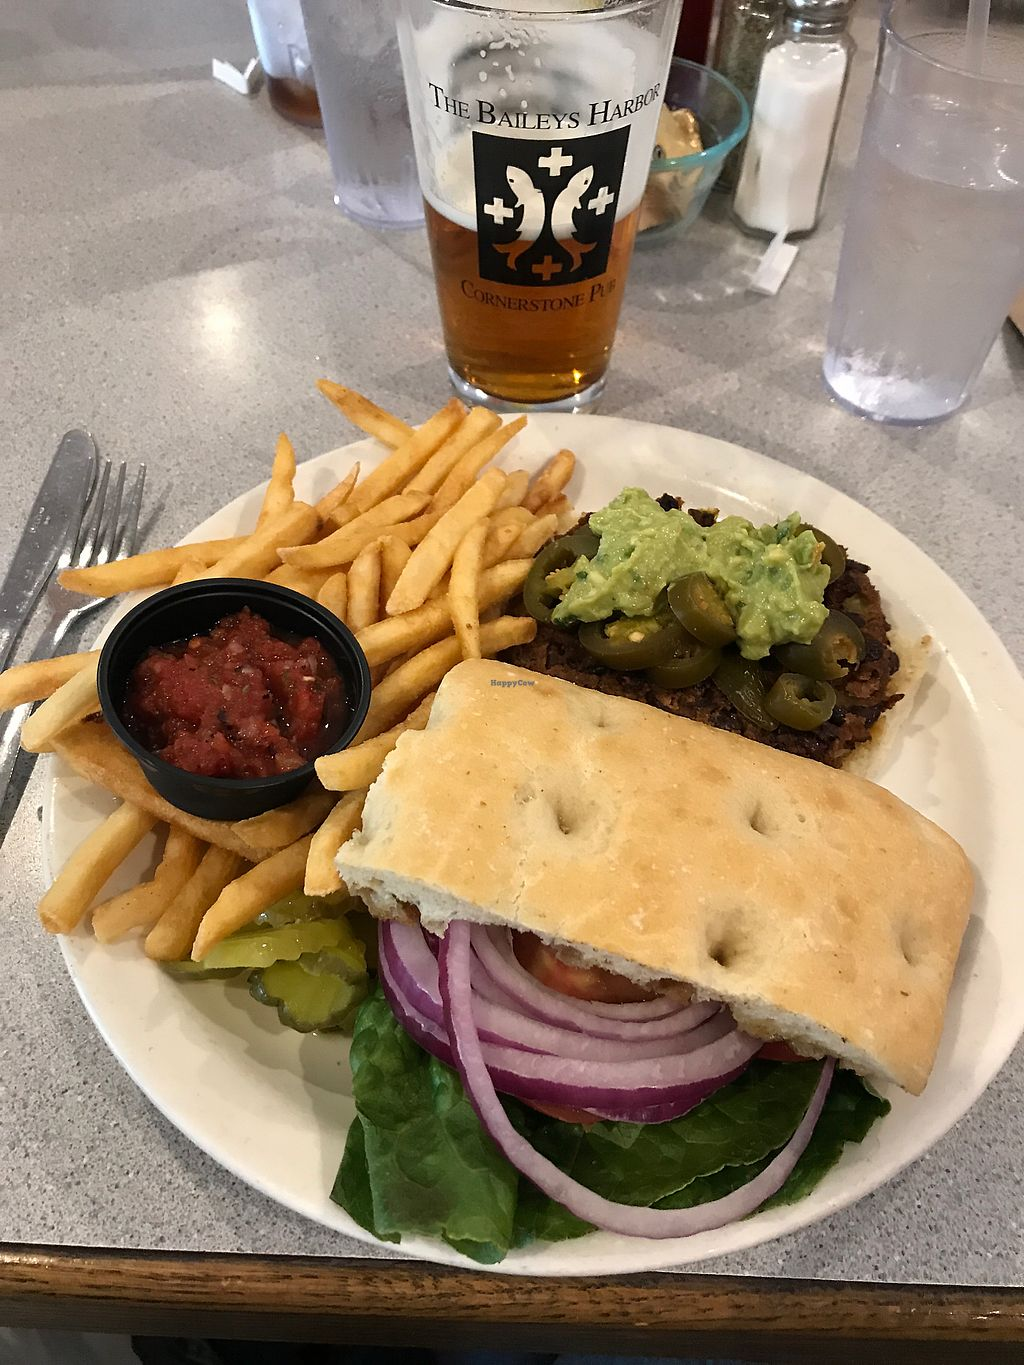 """Photo of Cornerstone Pub   by <a href=""""/members/profile/jch"""">jch</a> <br/>awesome bean burger at cornerstone! <br/> July 5, 2017  - <a href='/contact/abuse/image/77376/276943'>Report</a>"""